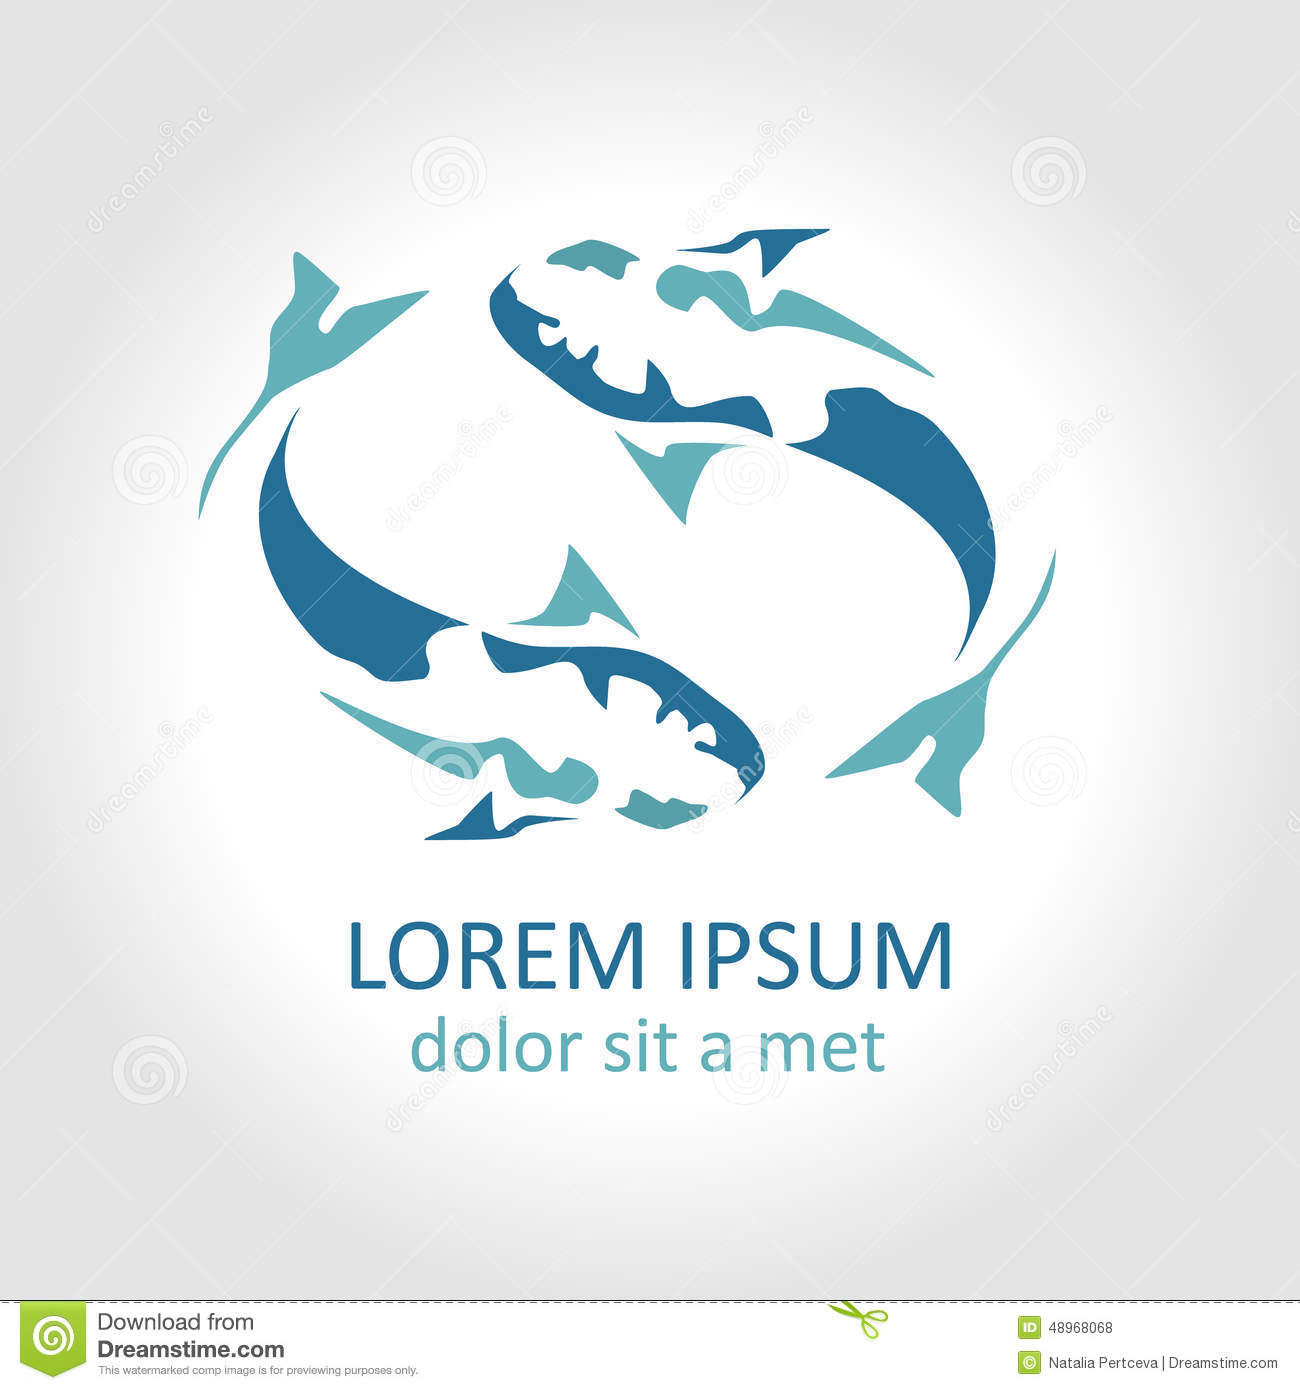 Website Templates Web Templates Dreamtemplate Fish Abstract Vector Design Logo Template Stock Vector